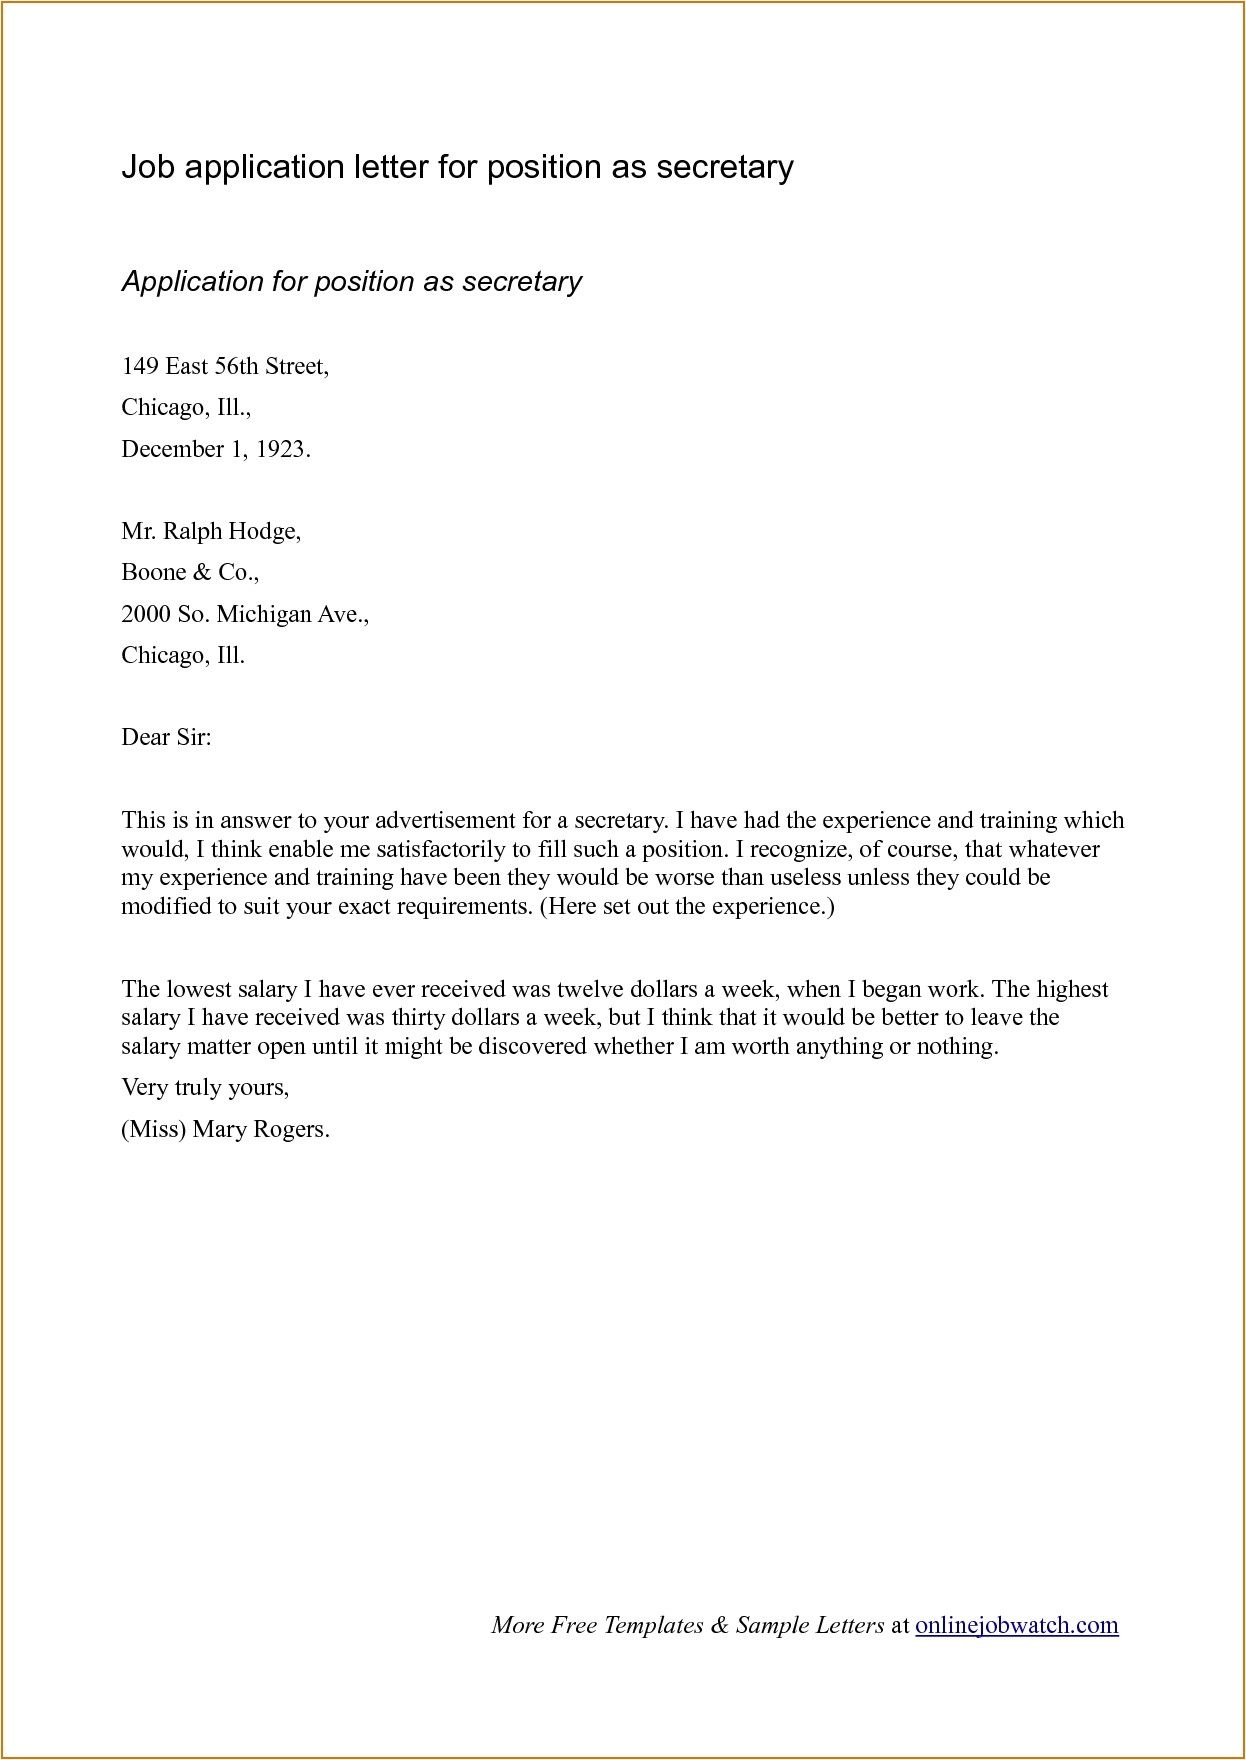 Cover Letter Template for Job Application Sample Cover Letter format for Job Application